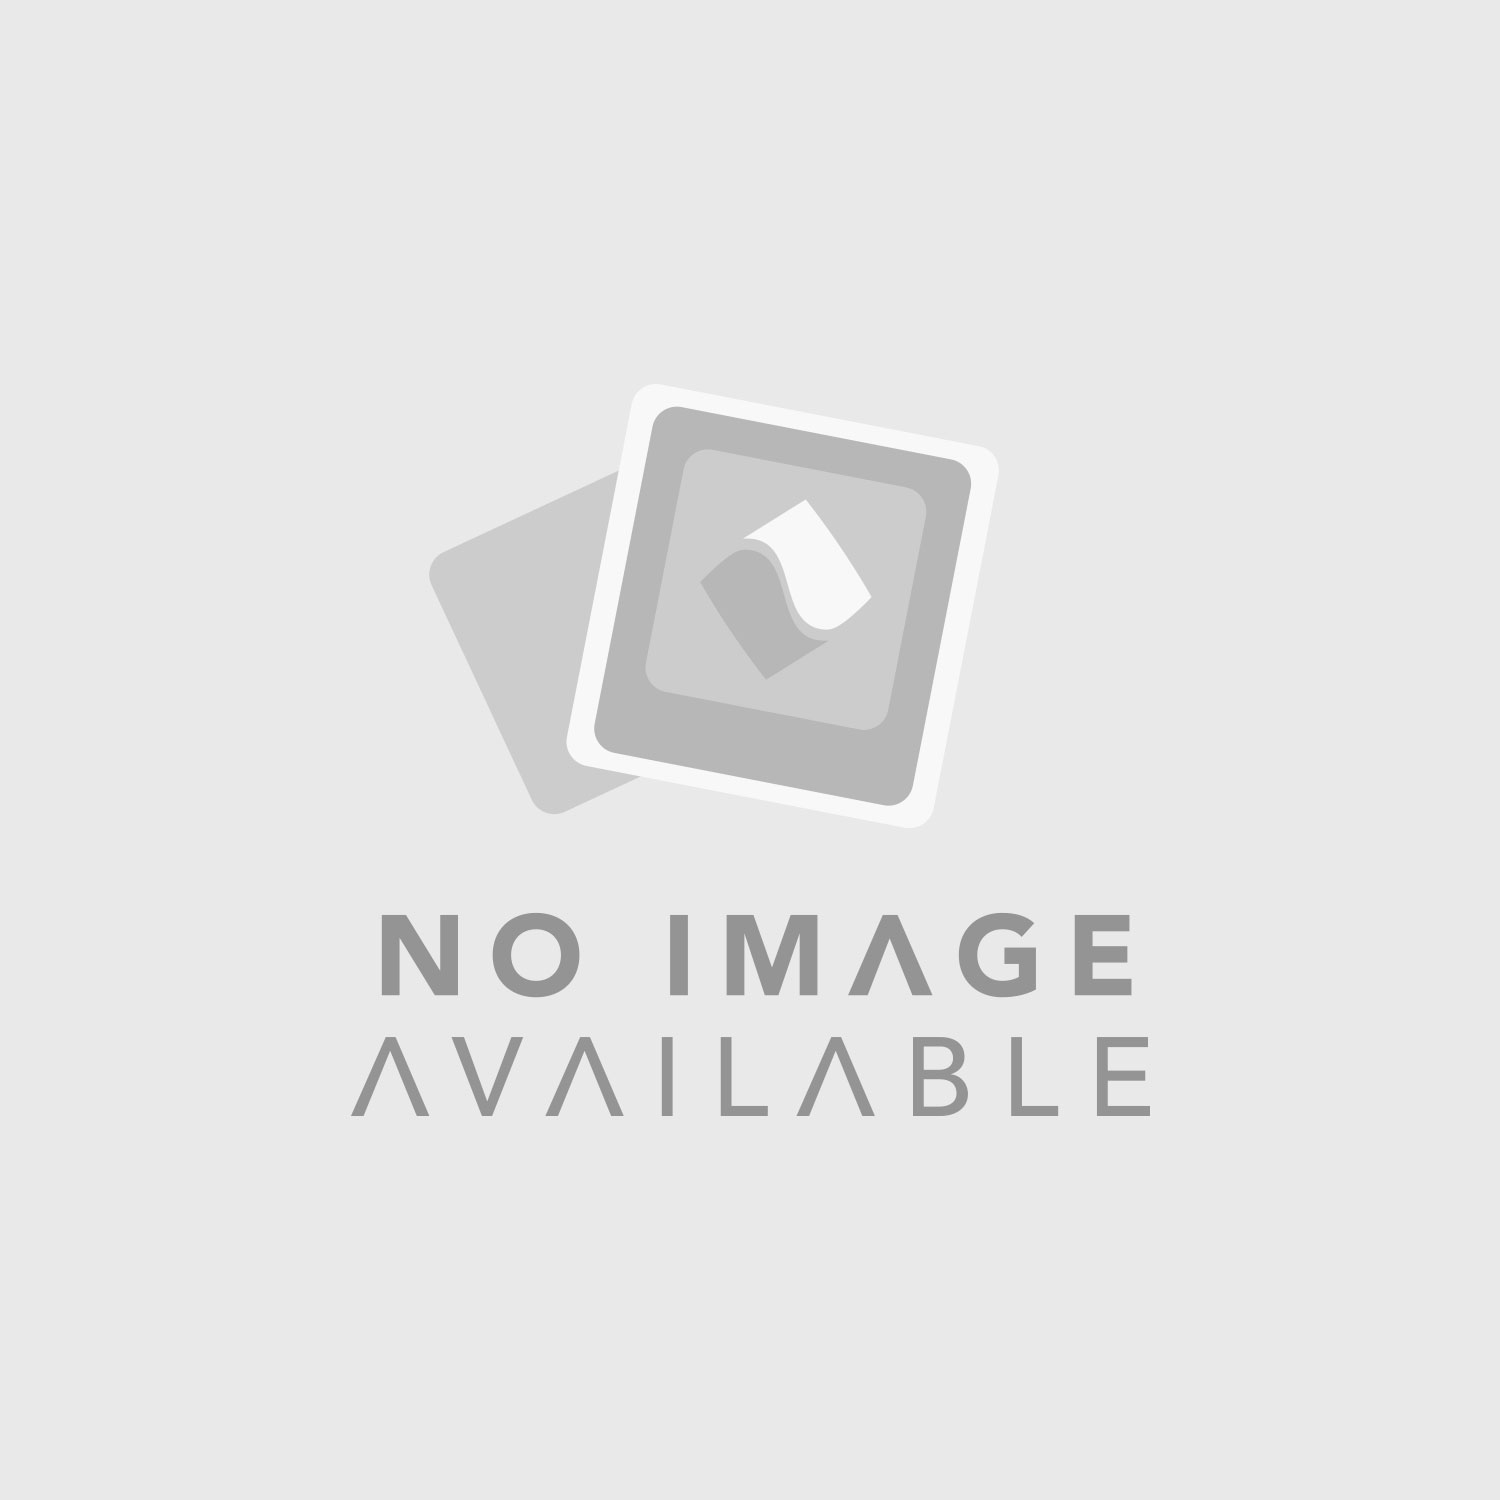 AKG CBL31 WLS Professional Boundary Layer Microphone For Wireless Use